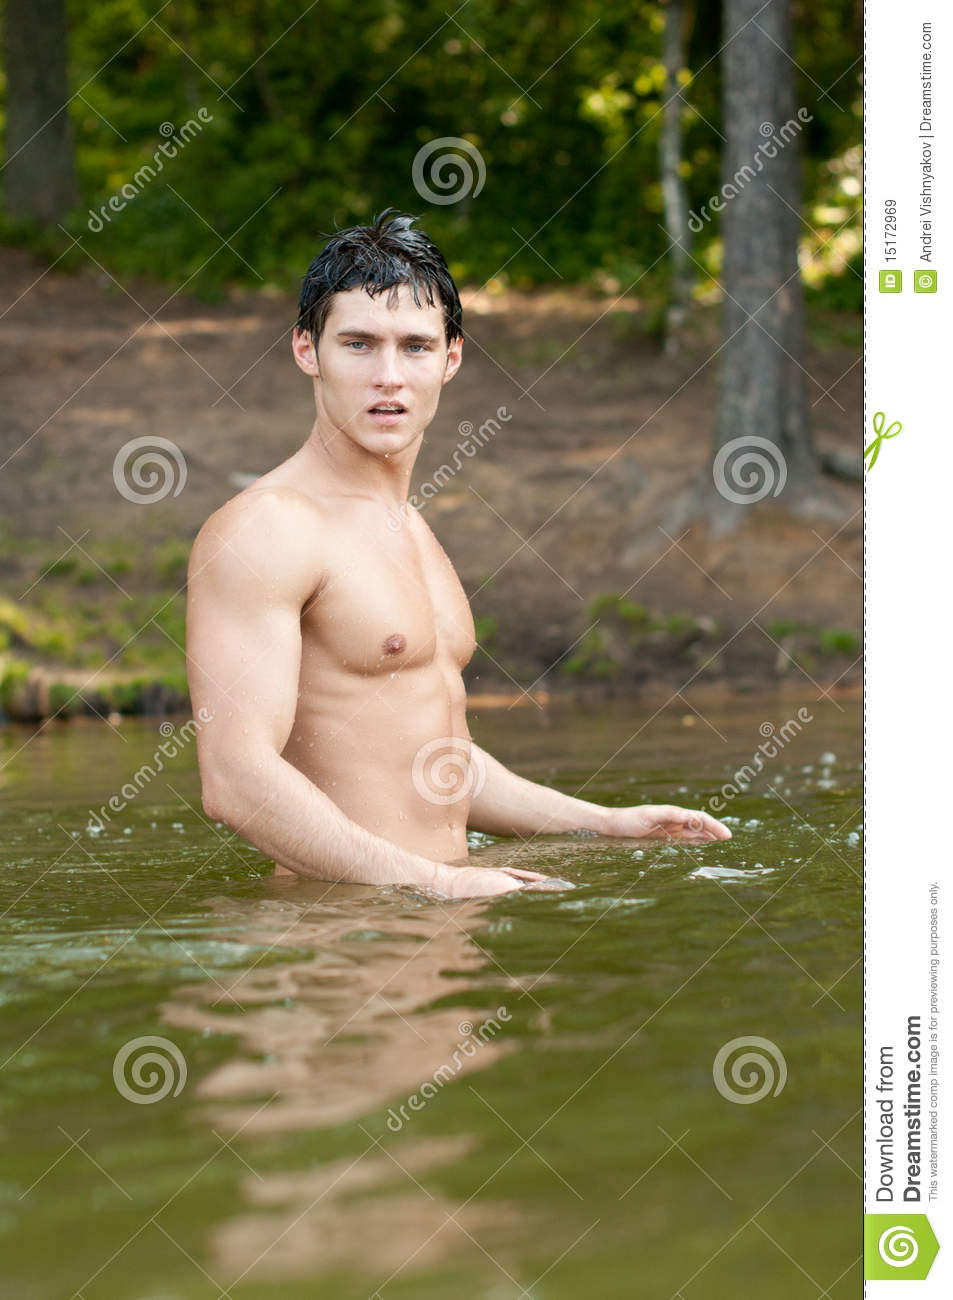 Model in het water